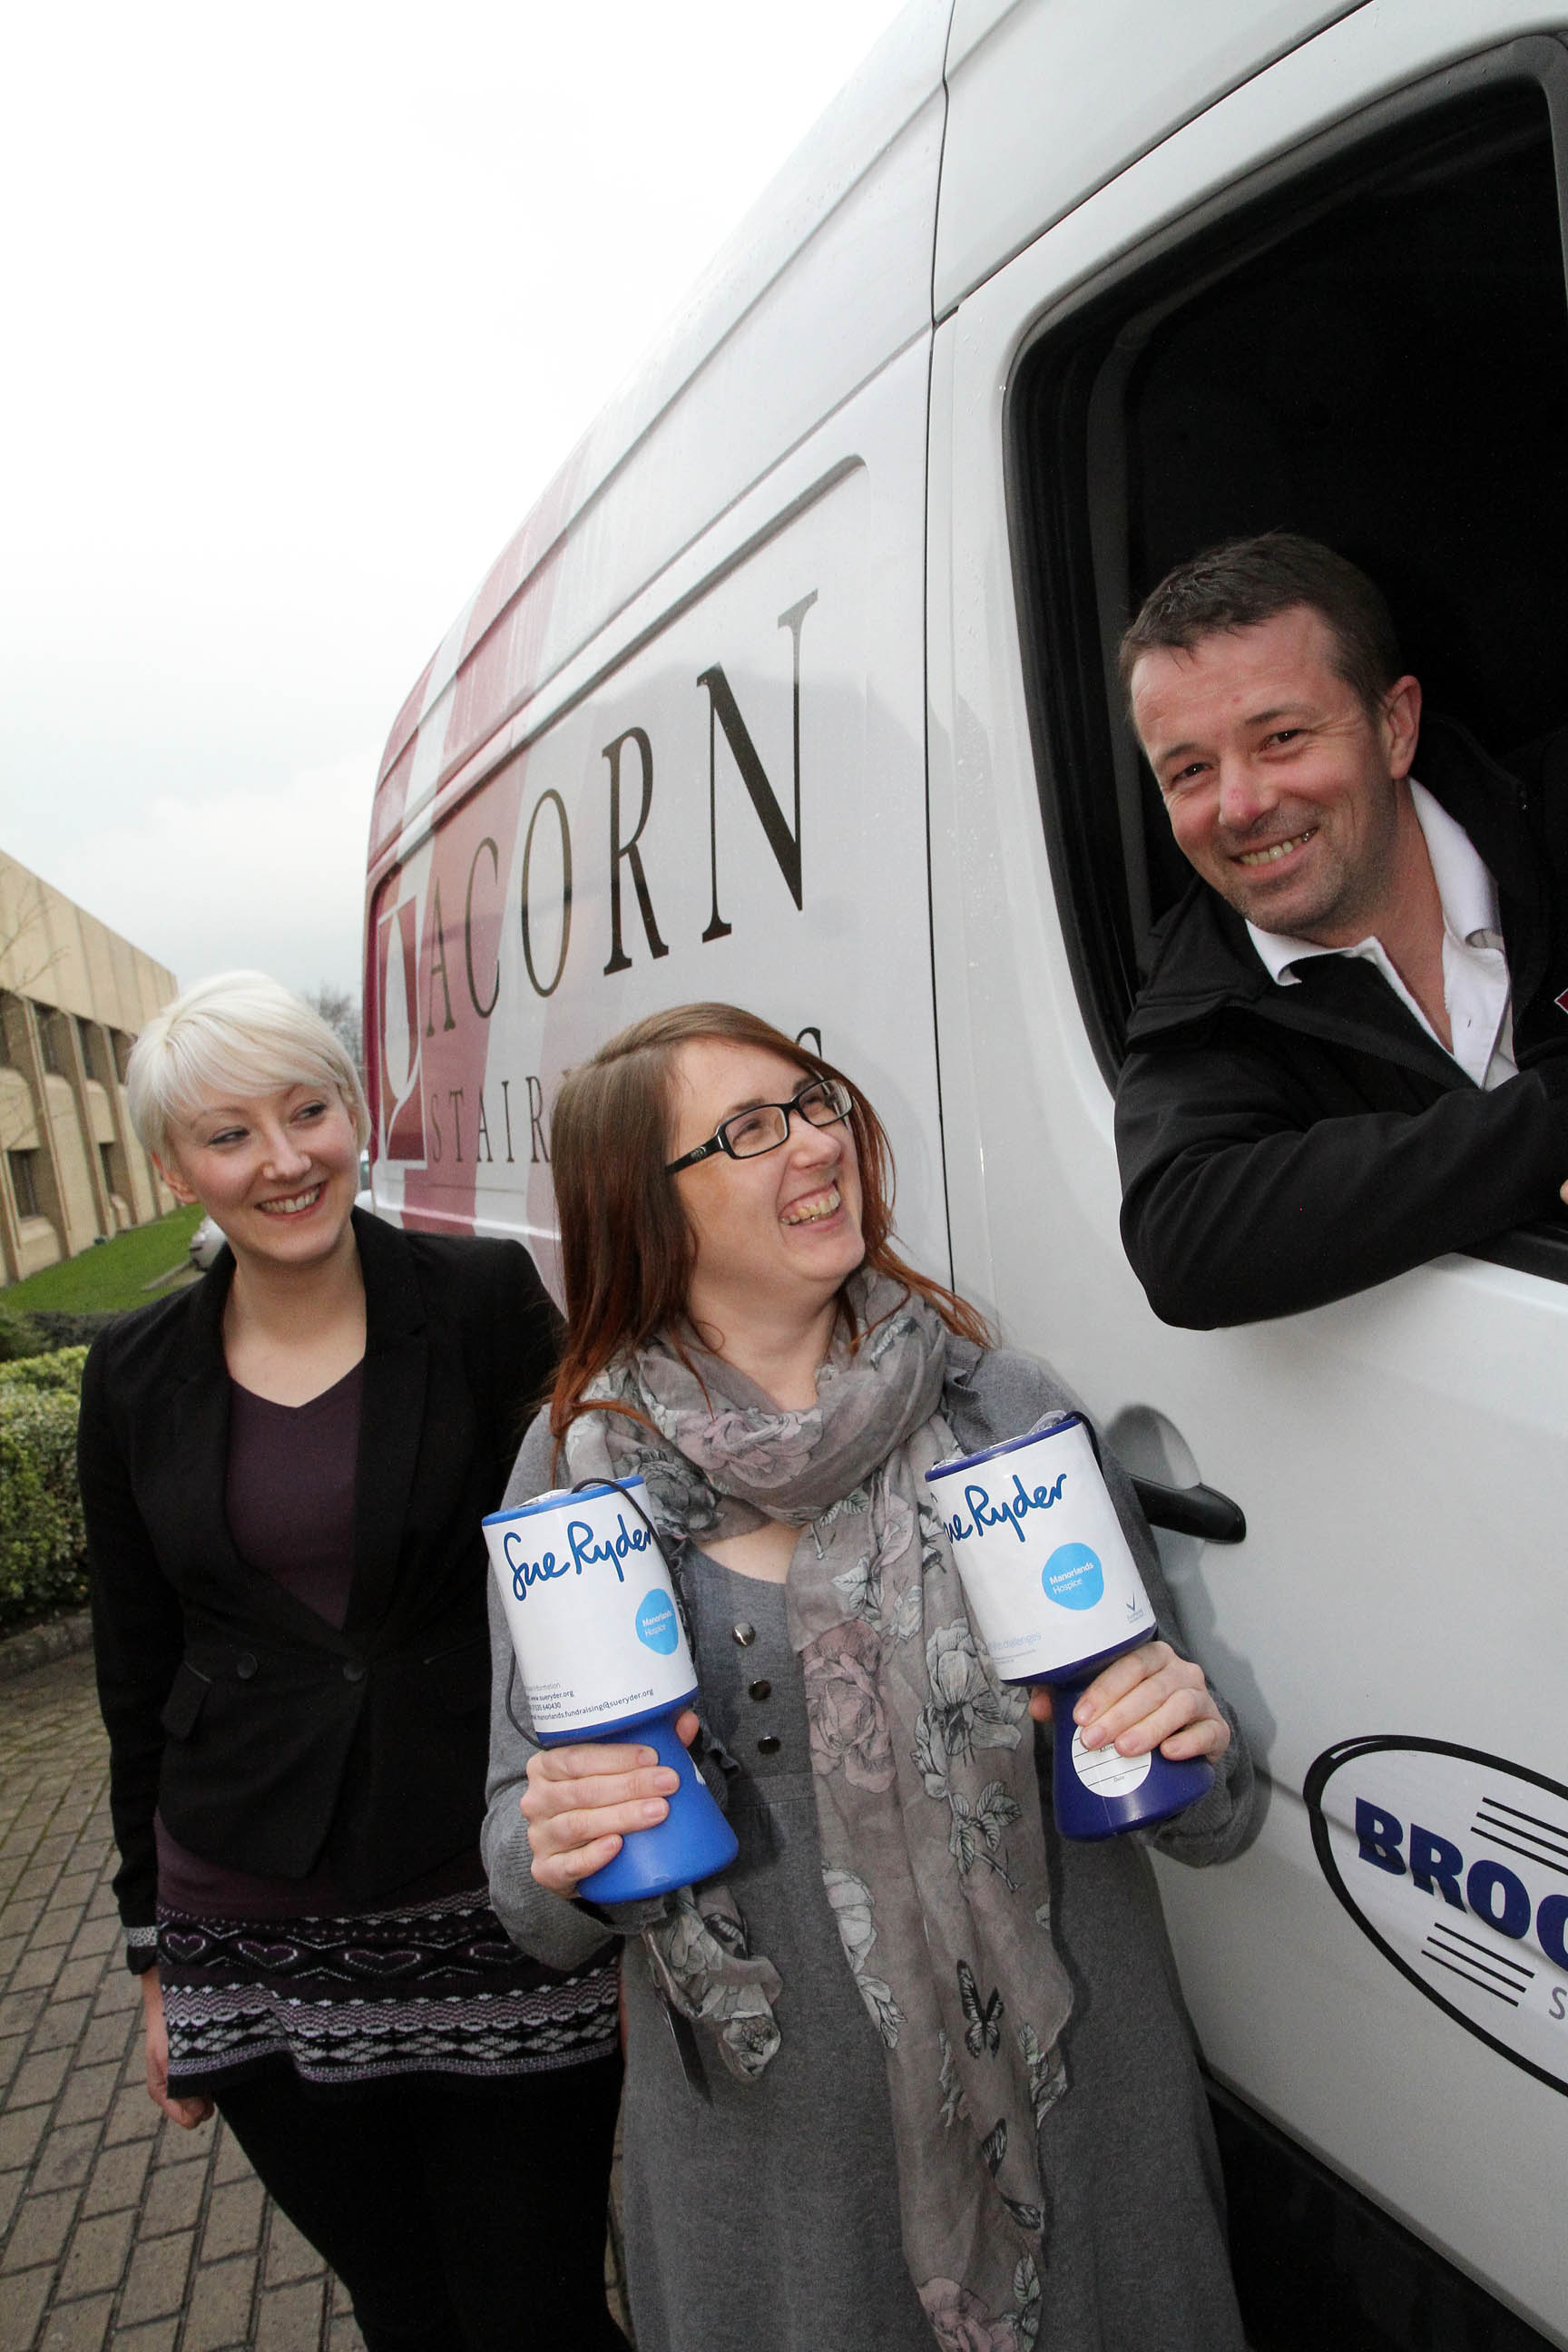 ue Ryder regional fundraising manager Hannah Taylor, centre, joins Acorn Stairlifts' European installations manager Georgie Chester and installation engineer Anthony Neild to thank the company for putting in a stairlift at the home of a Manorlands patie